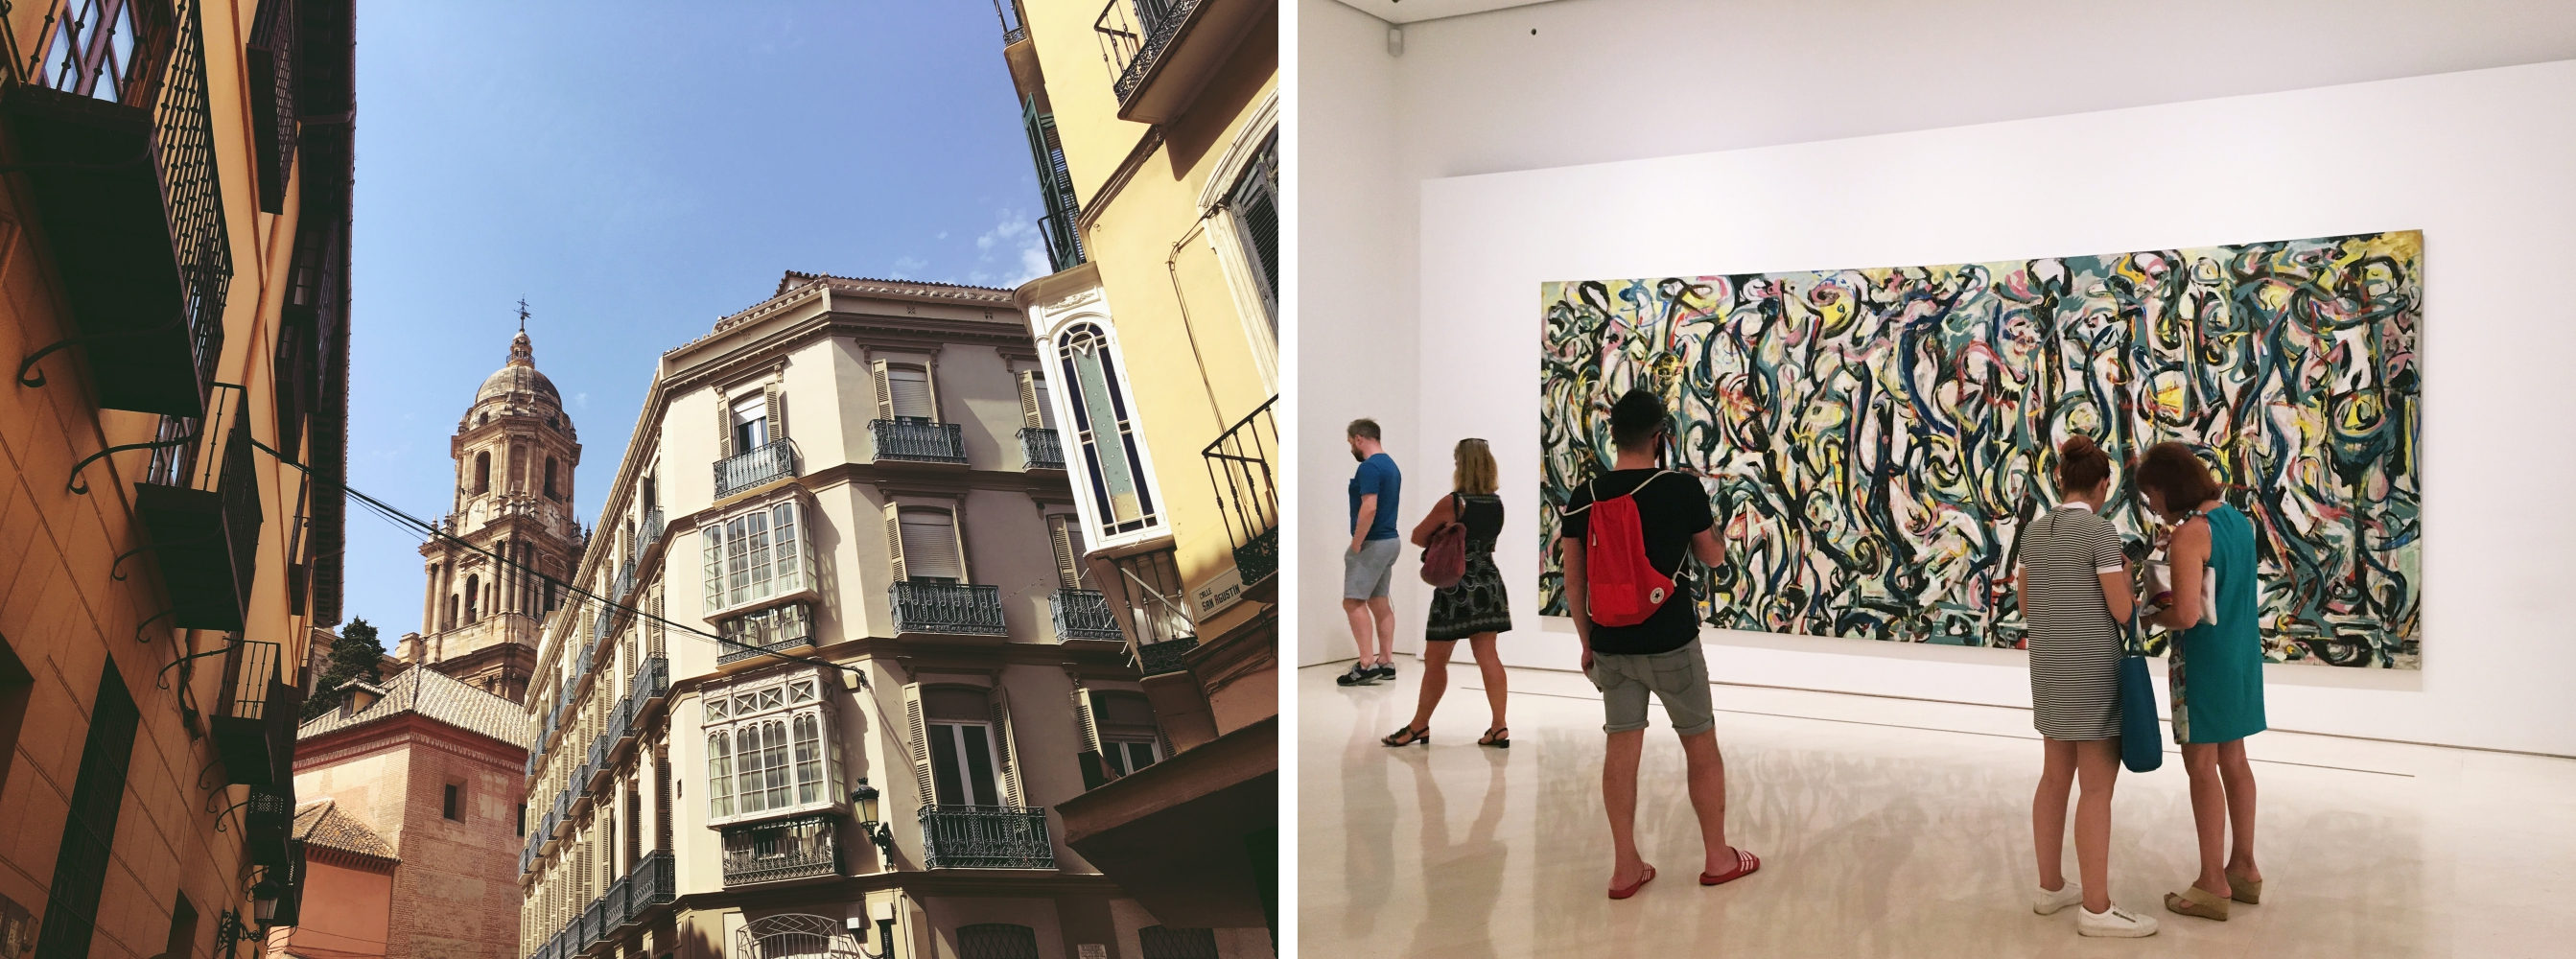 Ein perfekter Tag in Malaga Museo Picasso